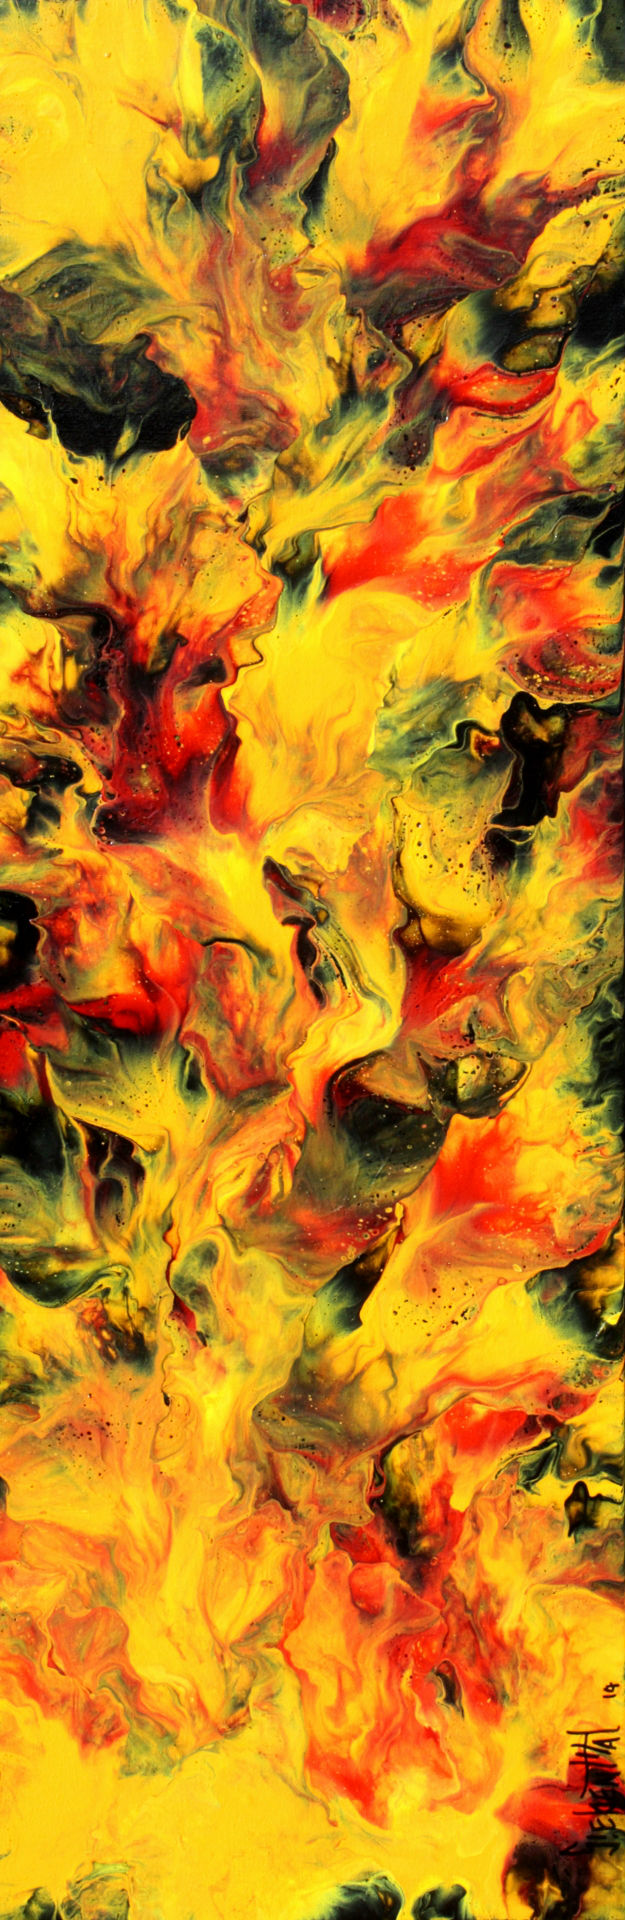 The Fire - Fluid Acrylic Art by Eric Siebenthal - Acrylicmind.com